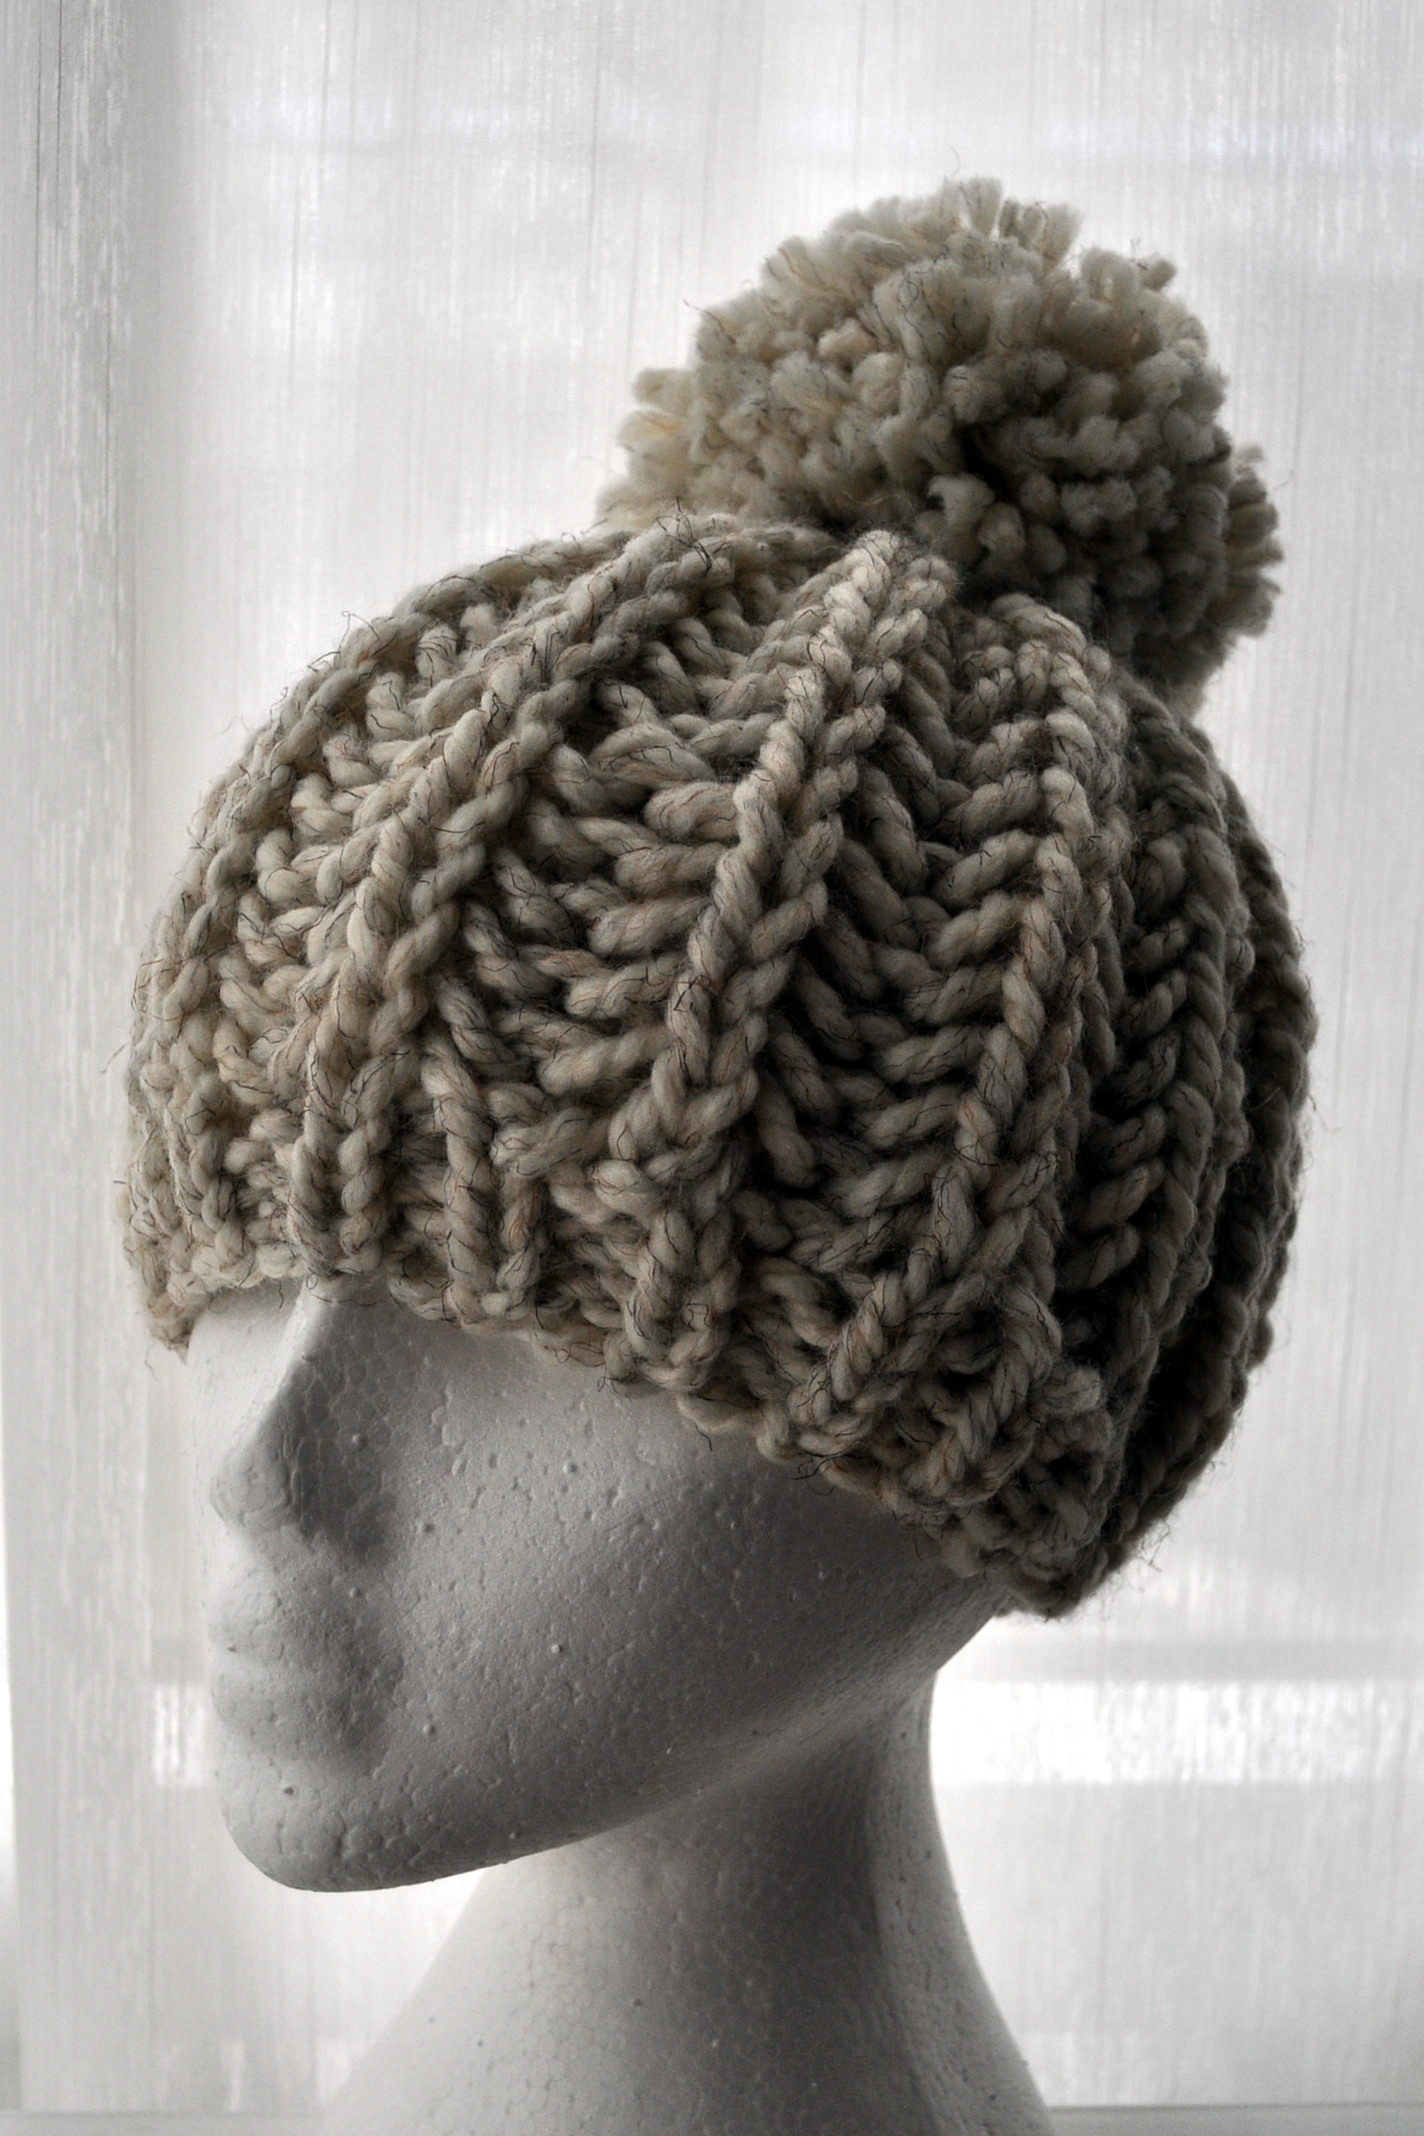 Crochet Knit Stitch Hat : To knit this hat, you will need to know the following: